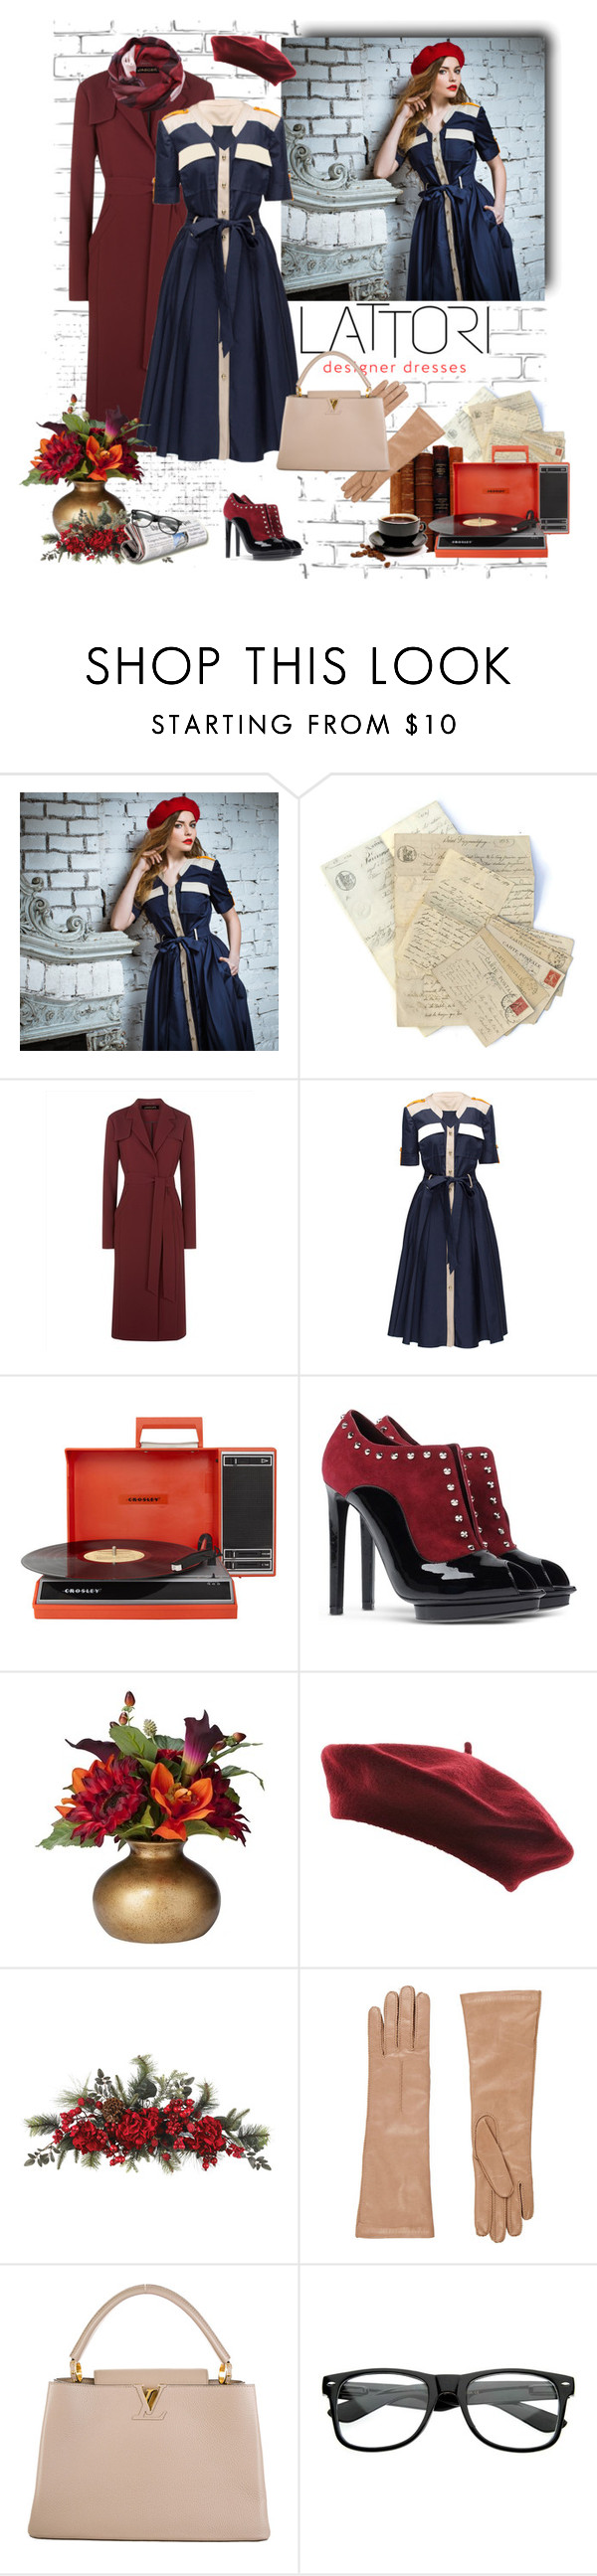 """Lattori"" by murenochek ❤ liked on Polyvore featuring moda, Lattori, Jaeger, Crosley, Alexander McQueen, Threshold, Nearly Natural, Barneys New York, Louis Vuitton y Good & Co"